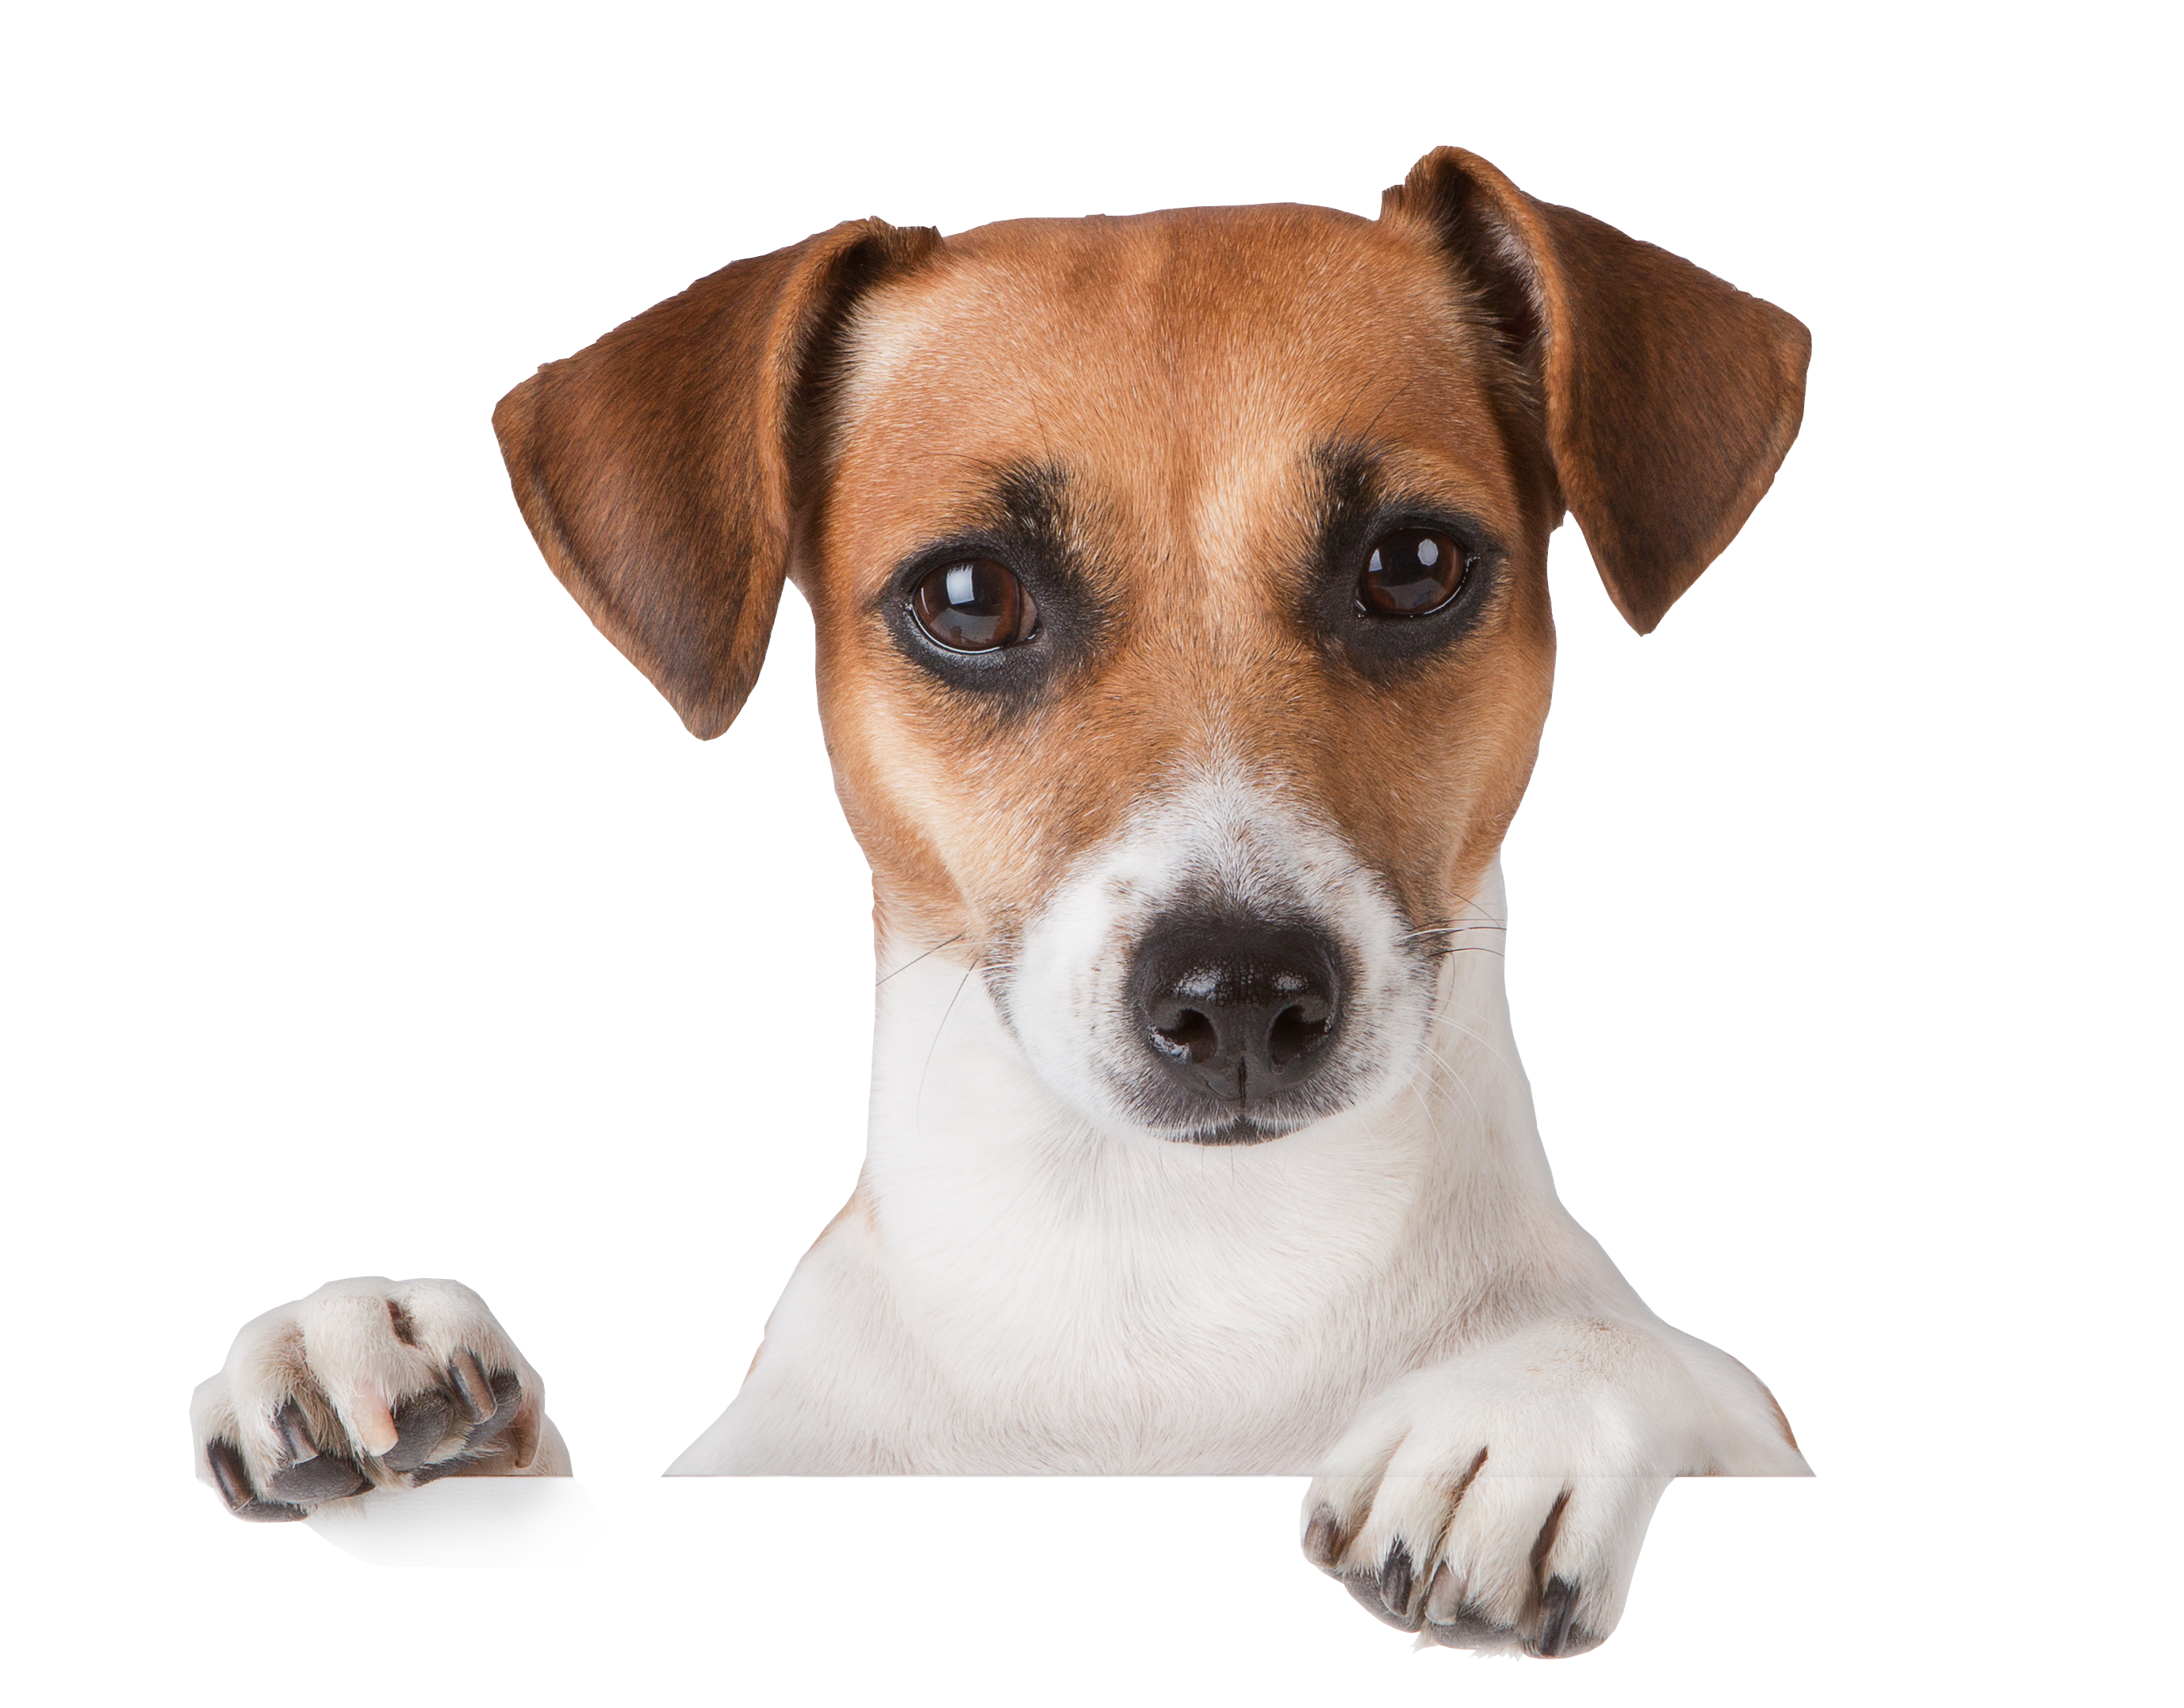 Cute dog png. Image dogs puppy pictures